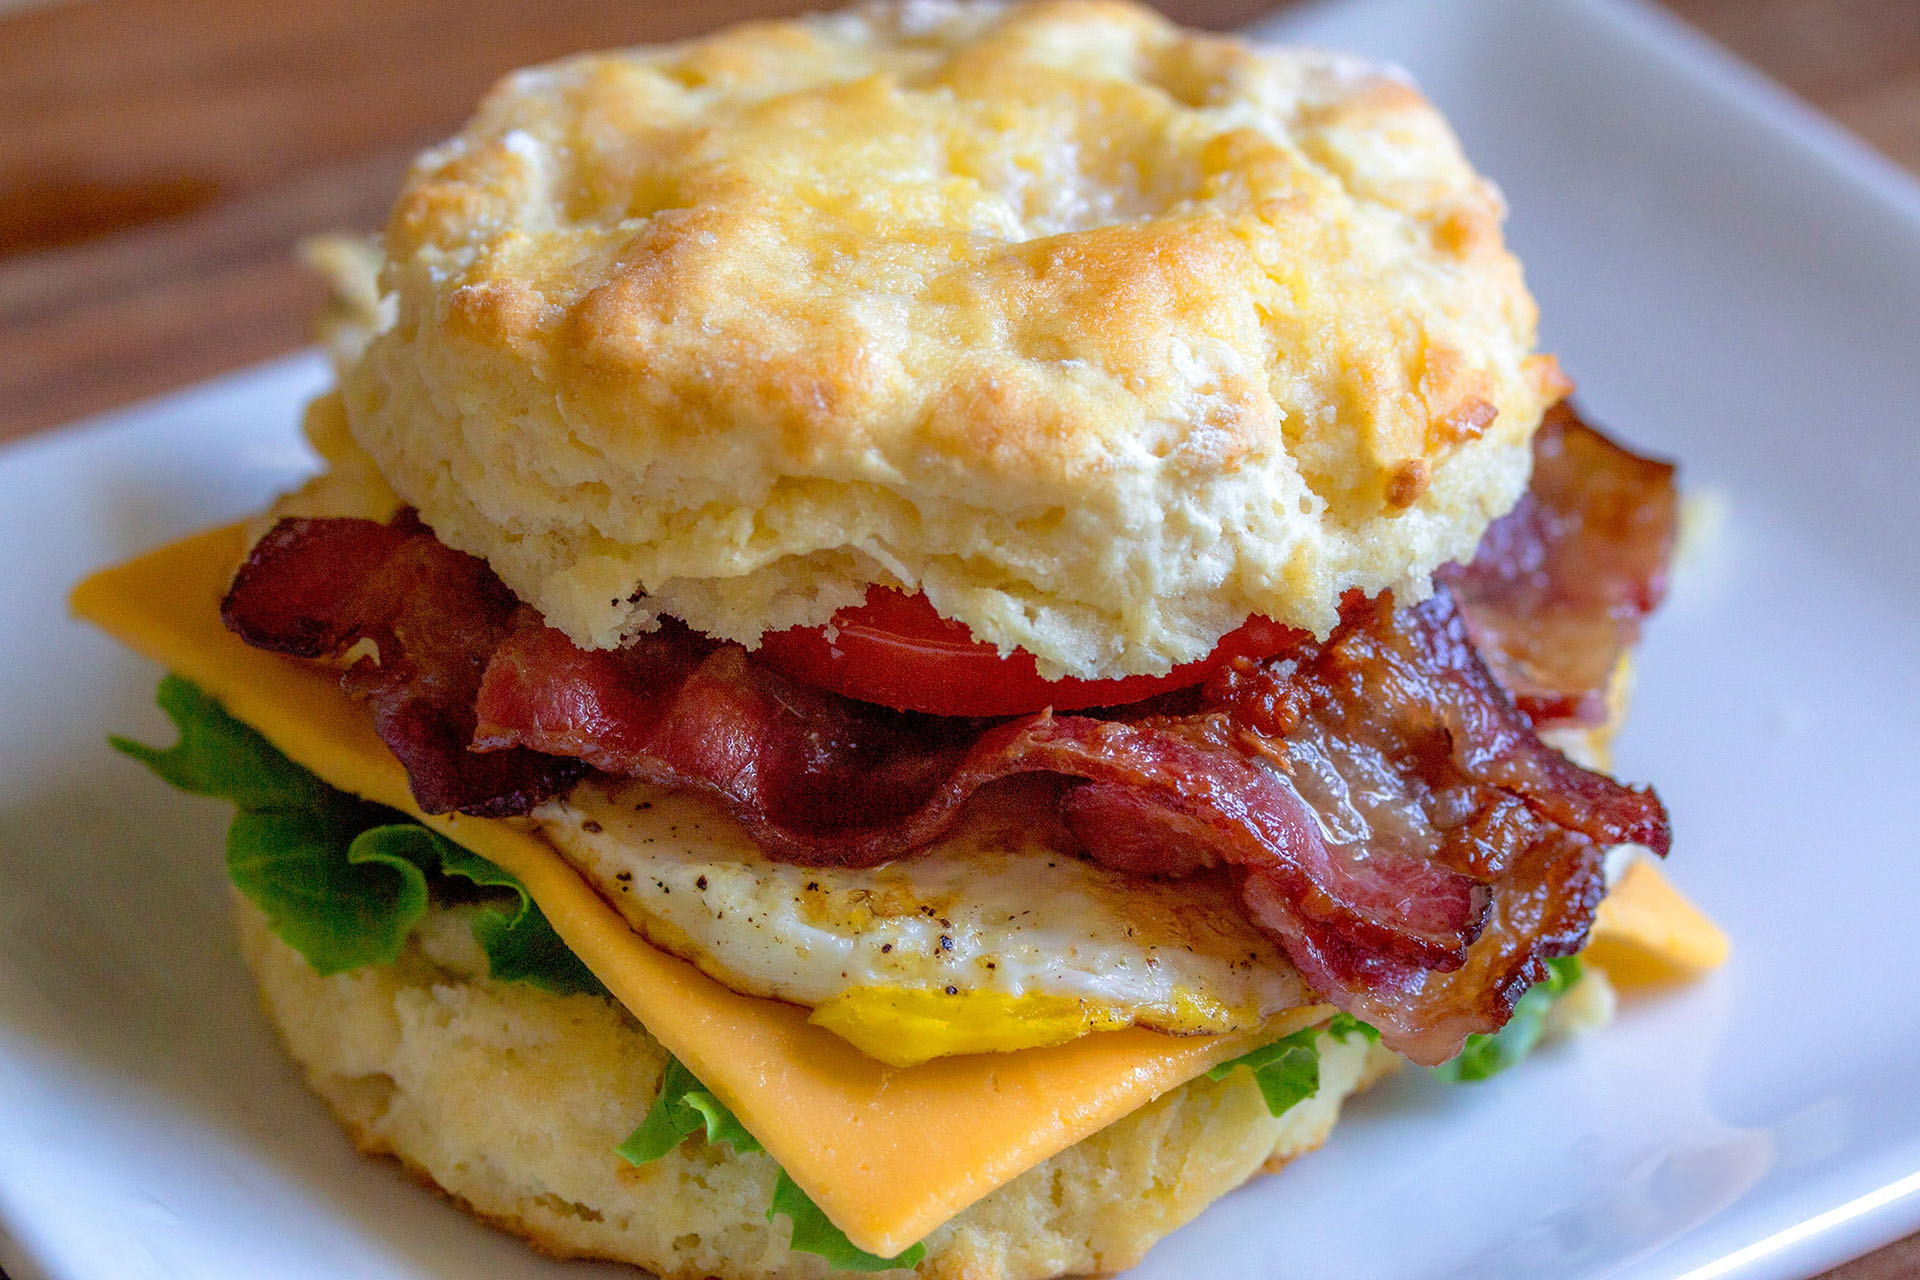 breakfast sandwich with egg, bacon and cheese